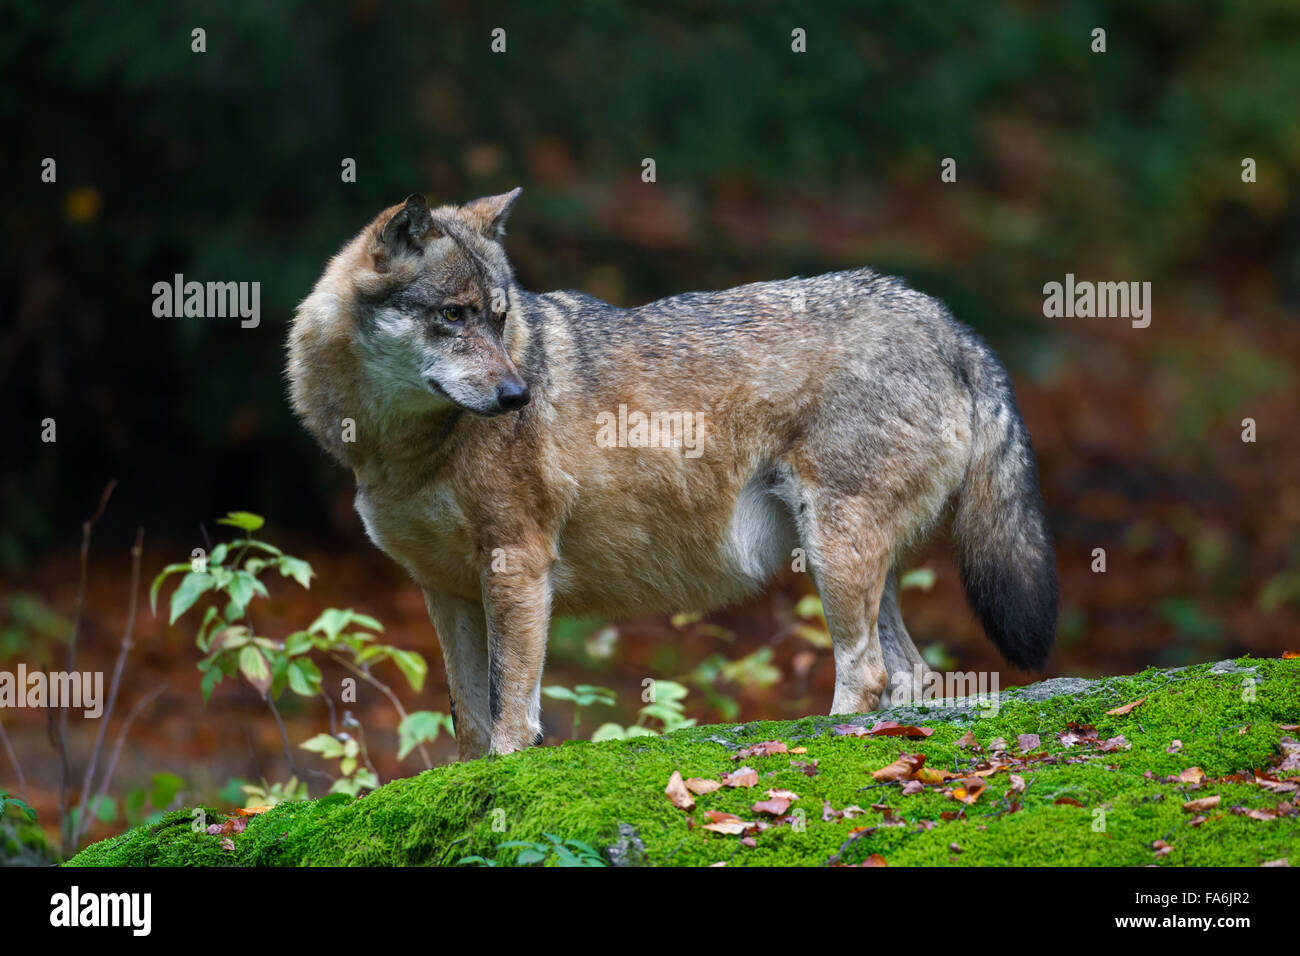 Well-fed European grey wolf (Canis lupus) with fat belly in autumn forest - Stock Image